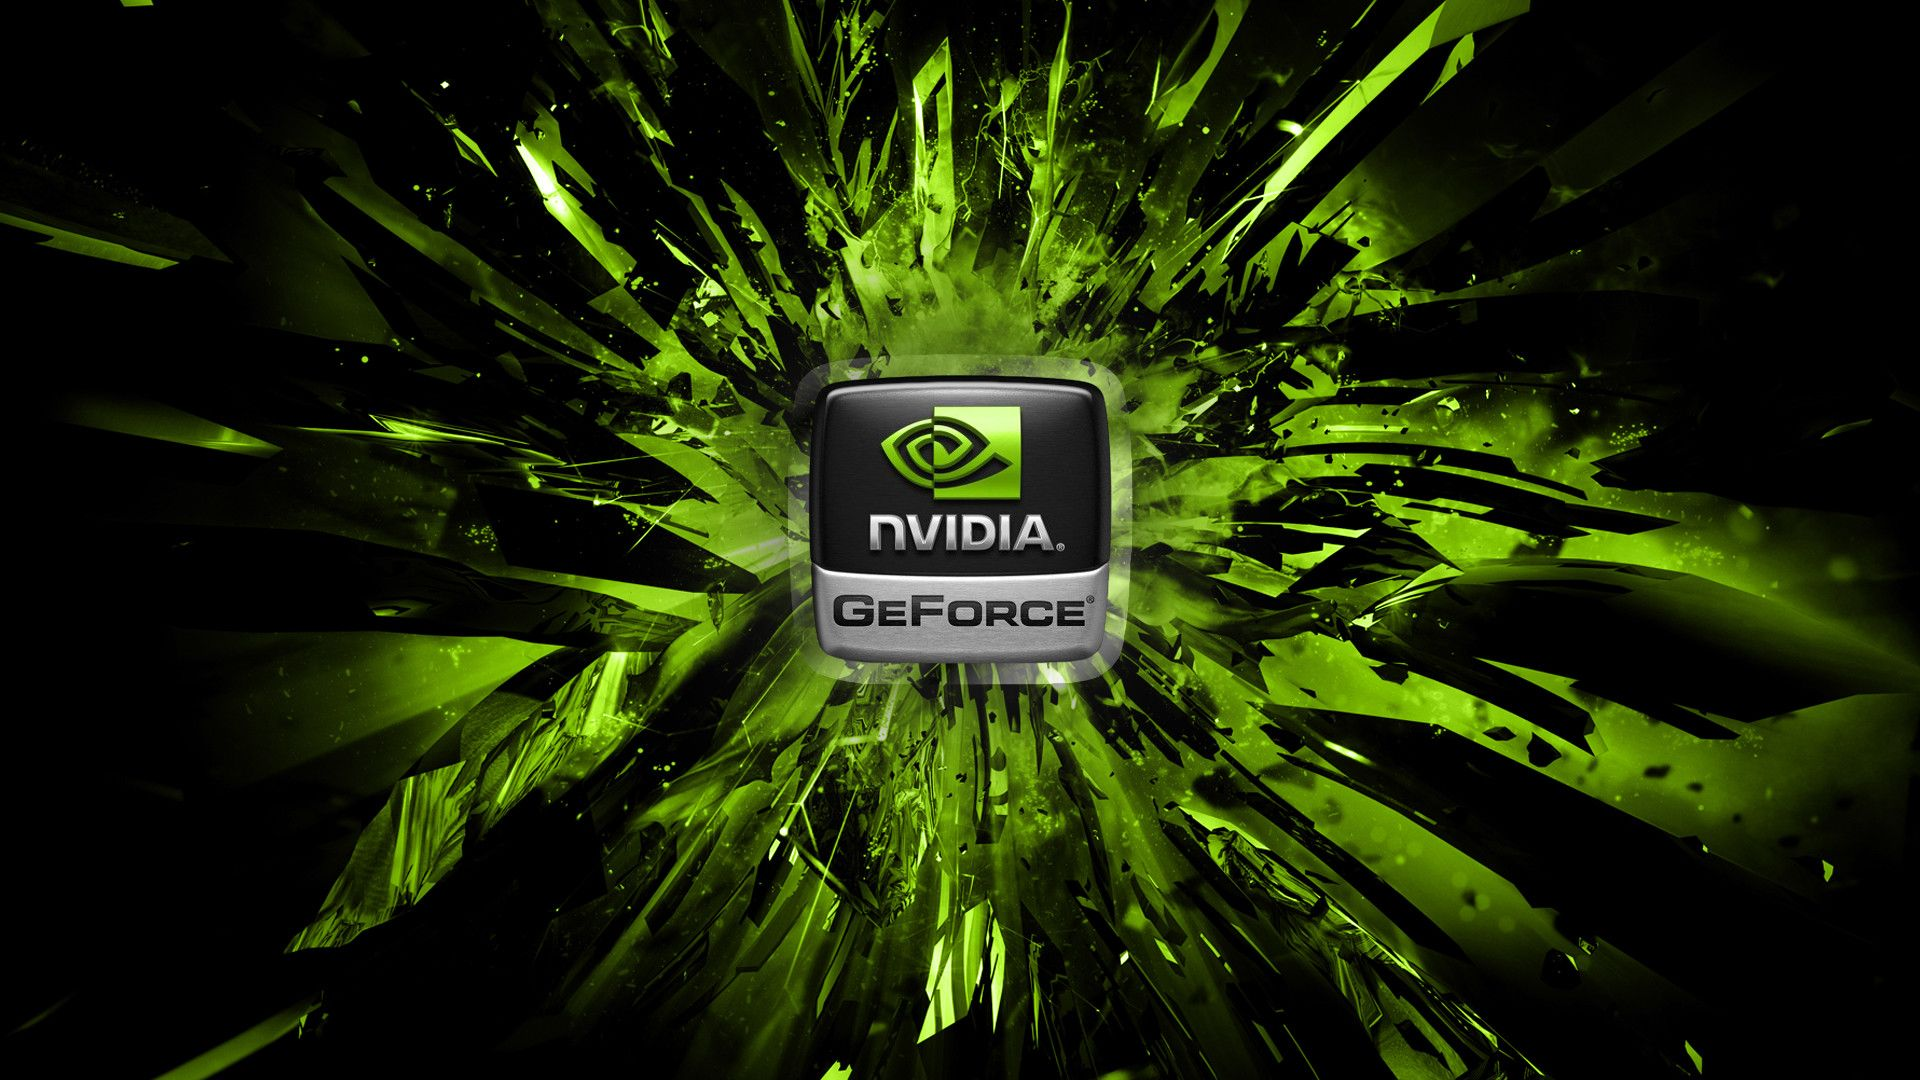 Nvidia Wallpapers, Pictures, Images - 285.4KB